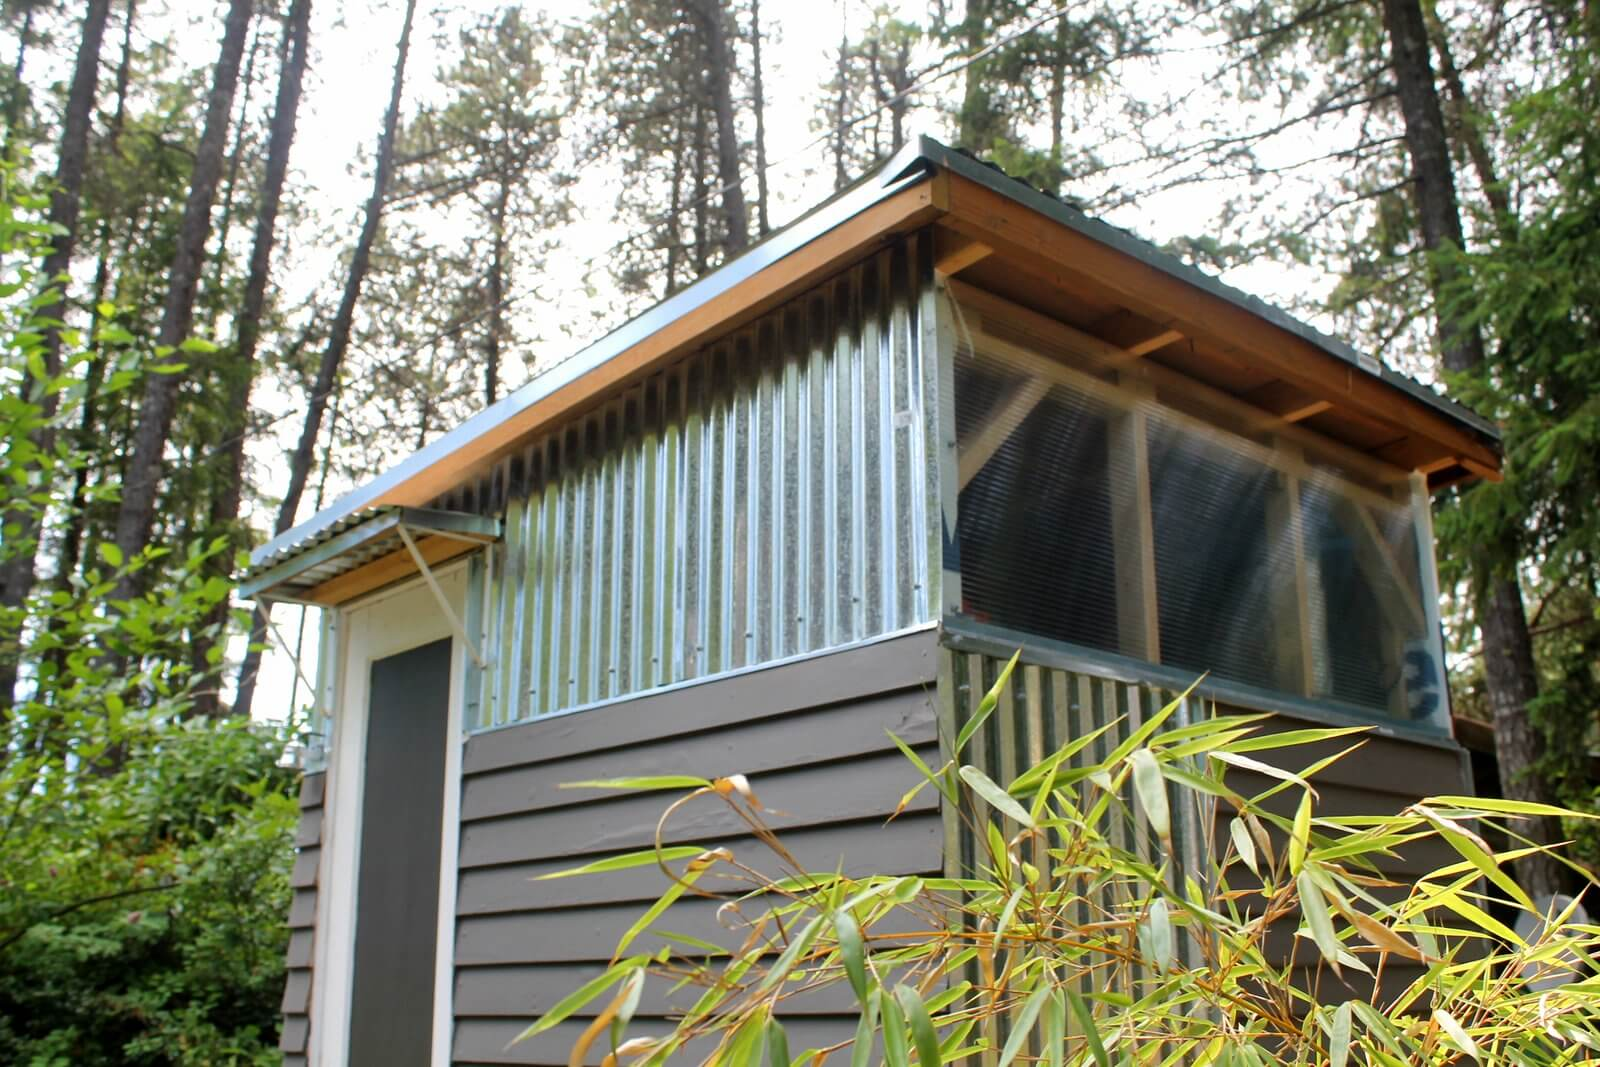 A_modern_shed_made_from_recycled_materials